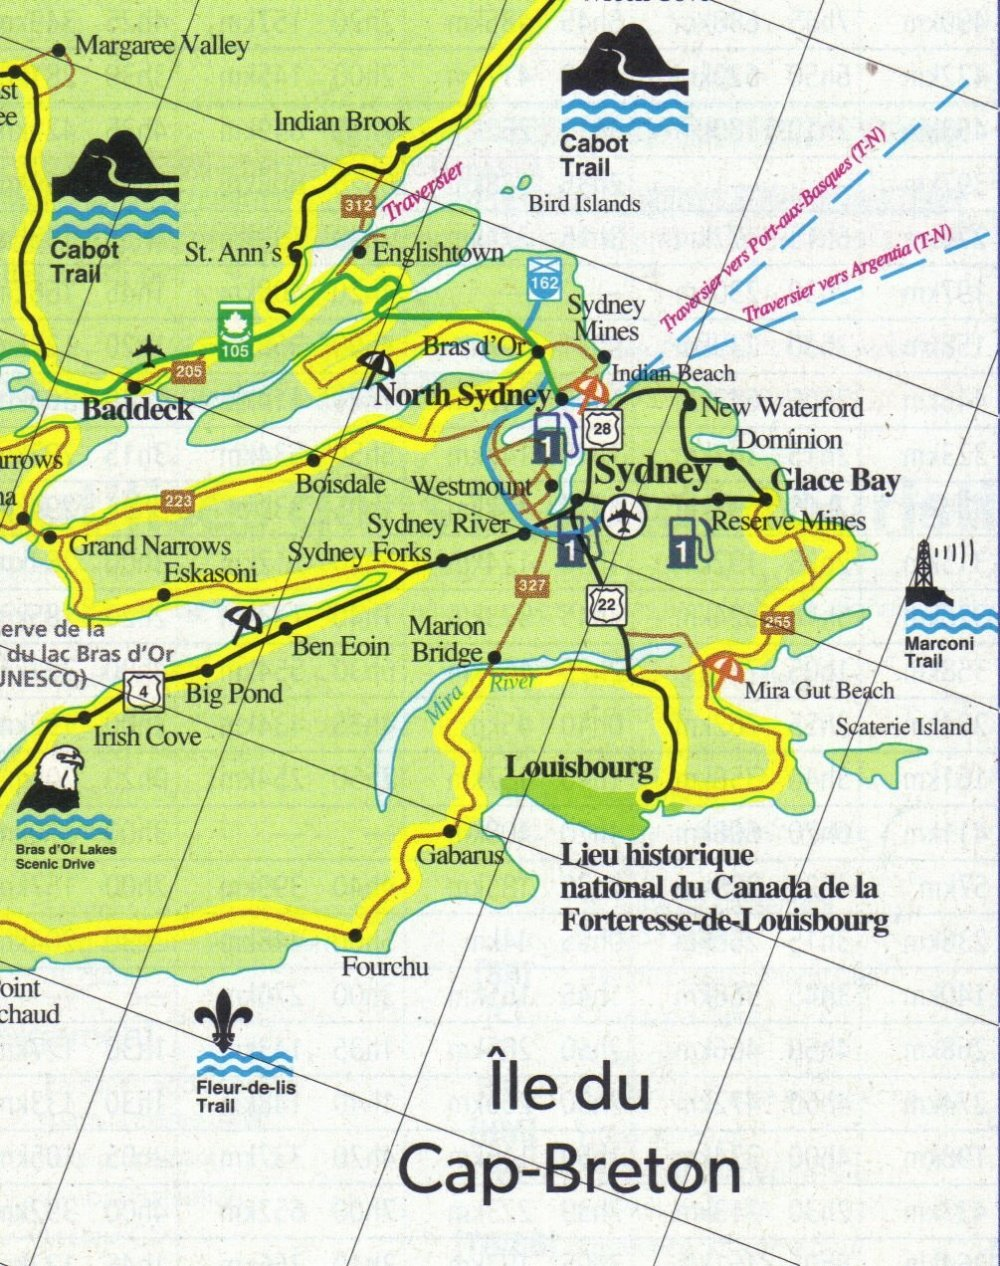 Carte_Marconi_trail.jpg